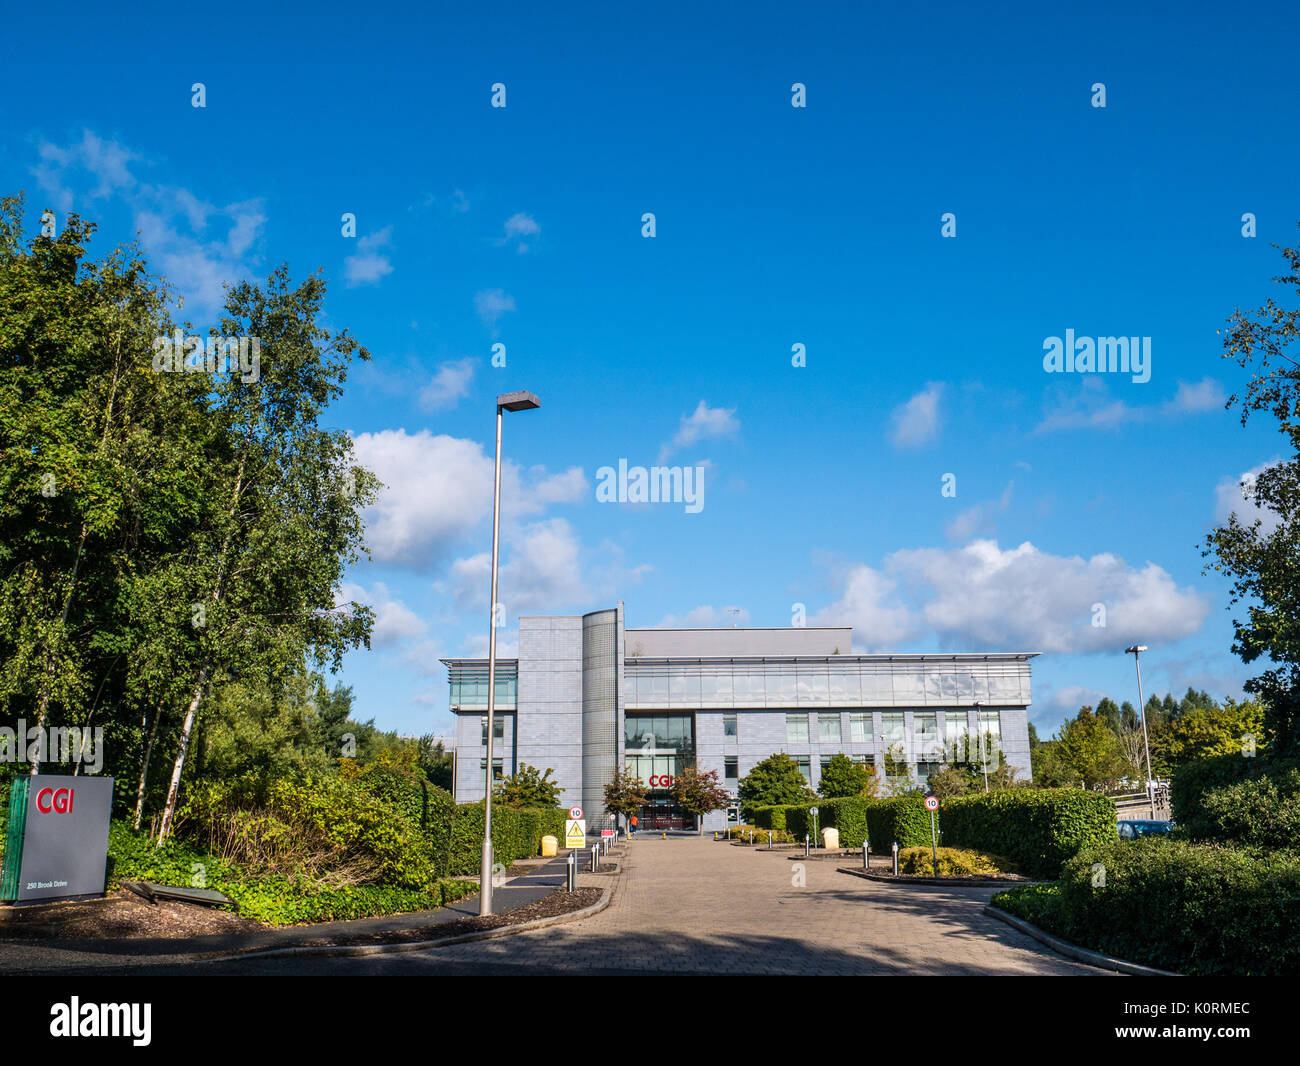 CGI, Reading, Berkshire, England Stockbild